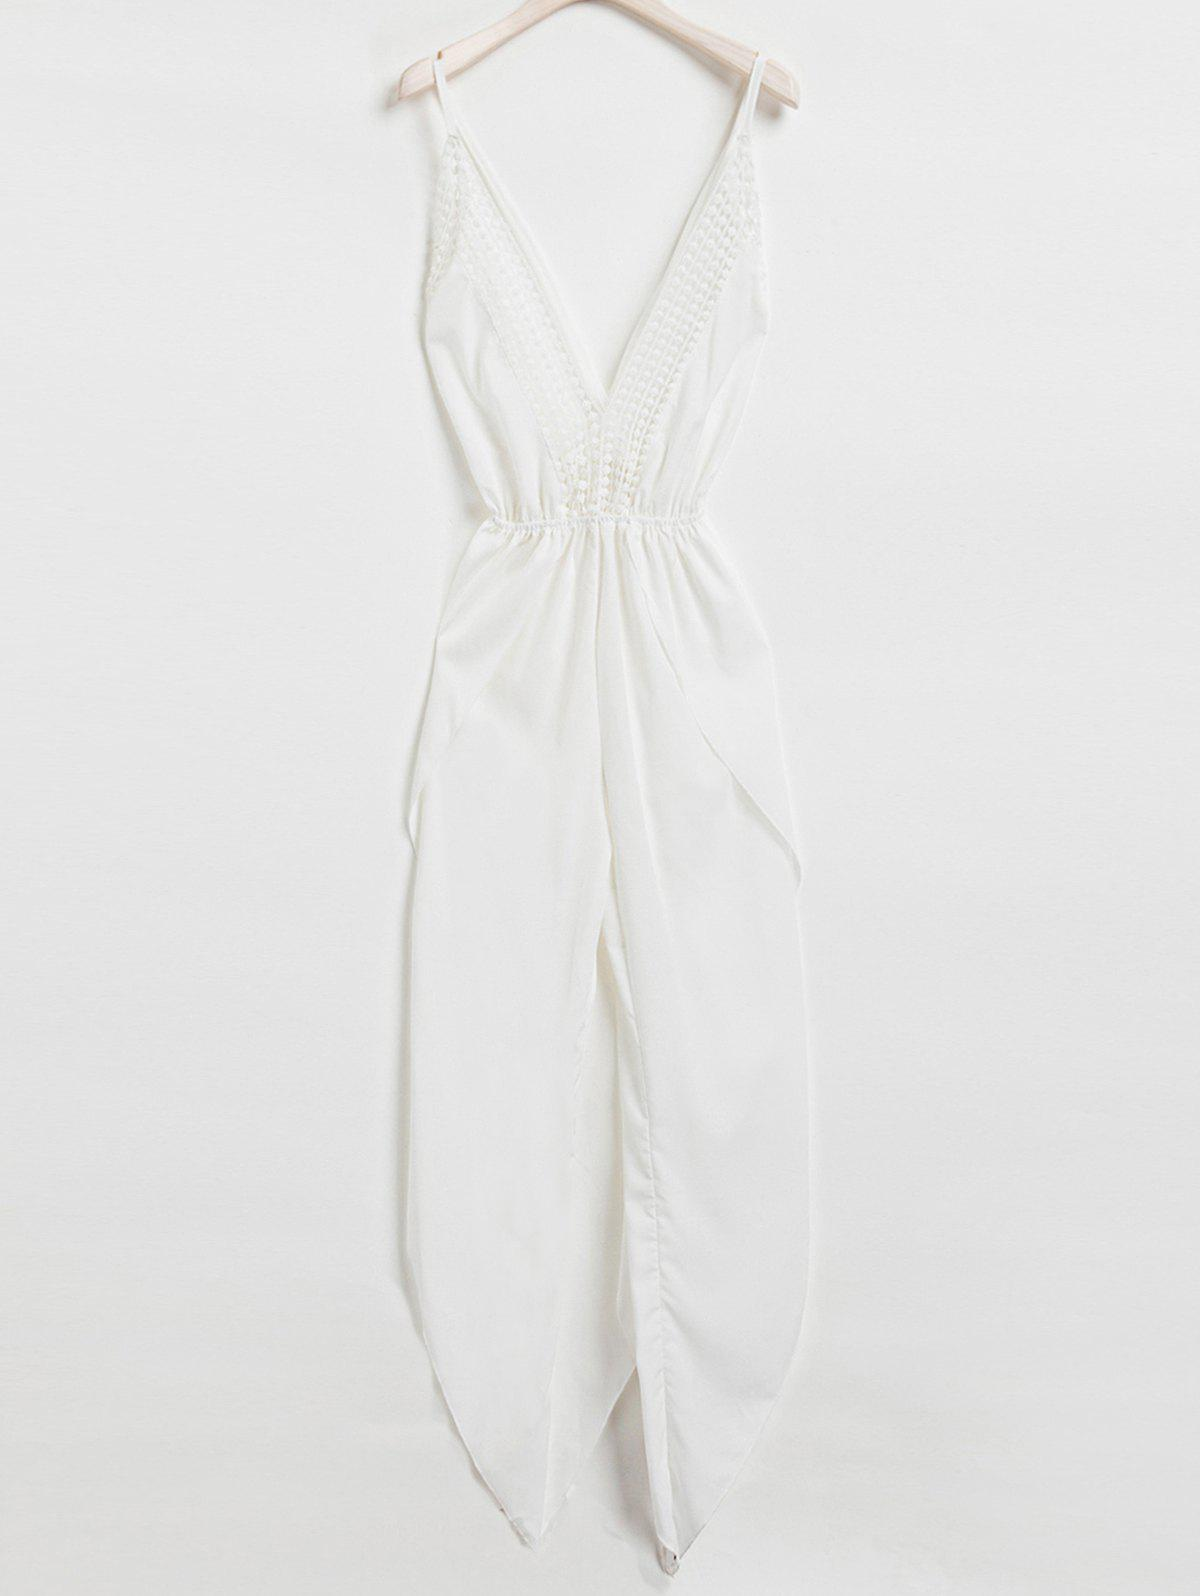 Sexy Sleeveless Plunging Neck White Backless Asymmetrical Jumpsuit For Women sexy plunging neck sleeveless ruffled asymmetrical women s dress